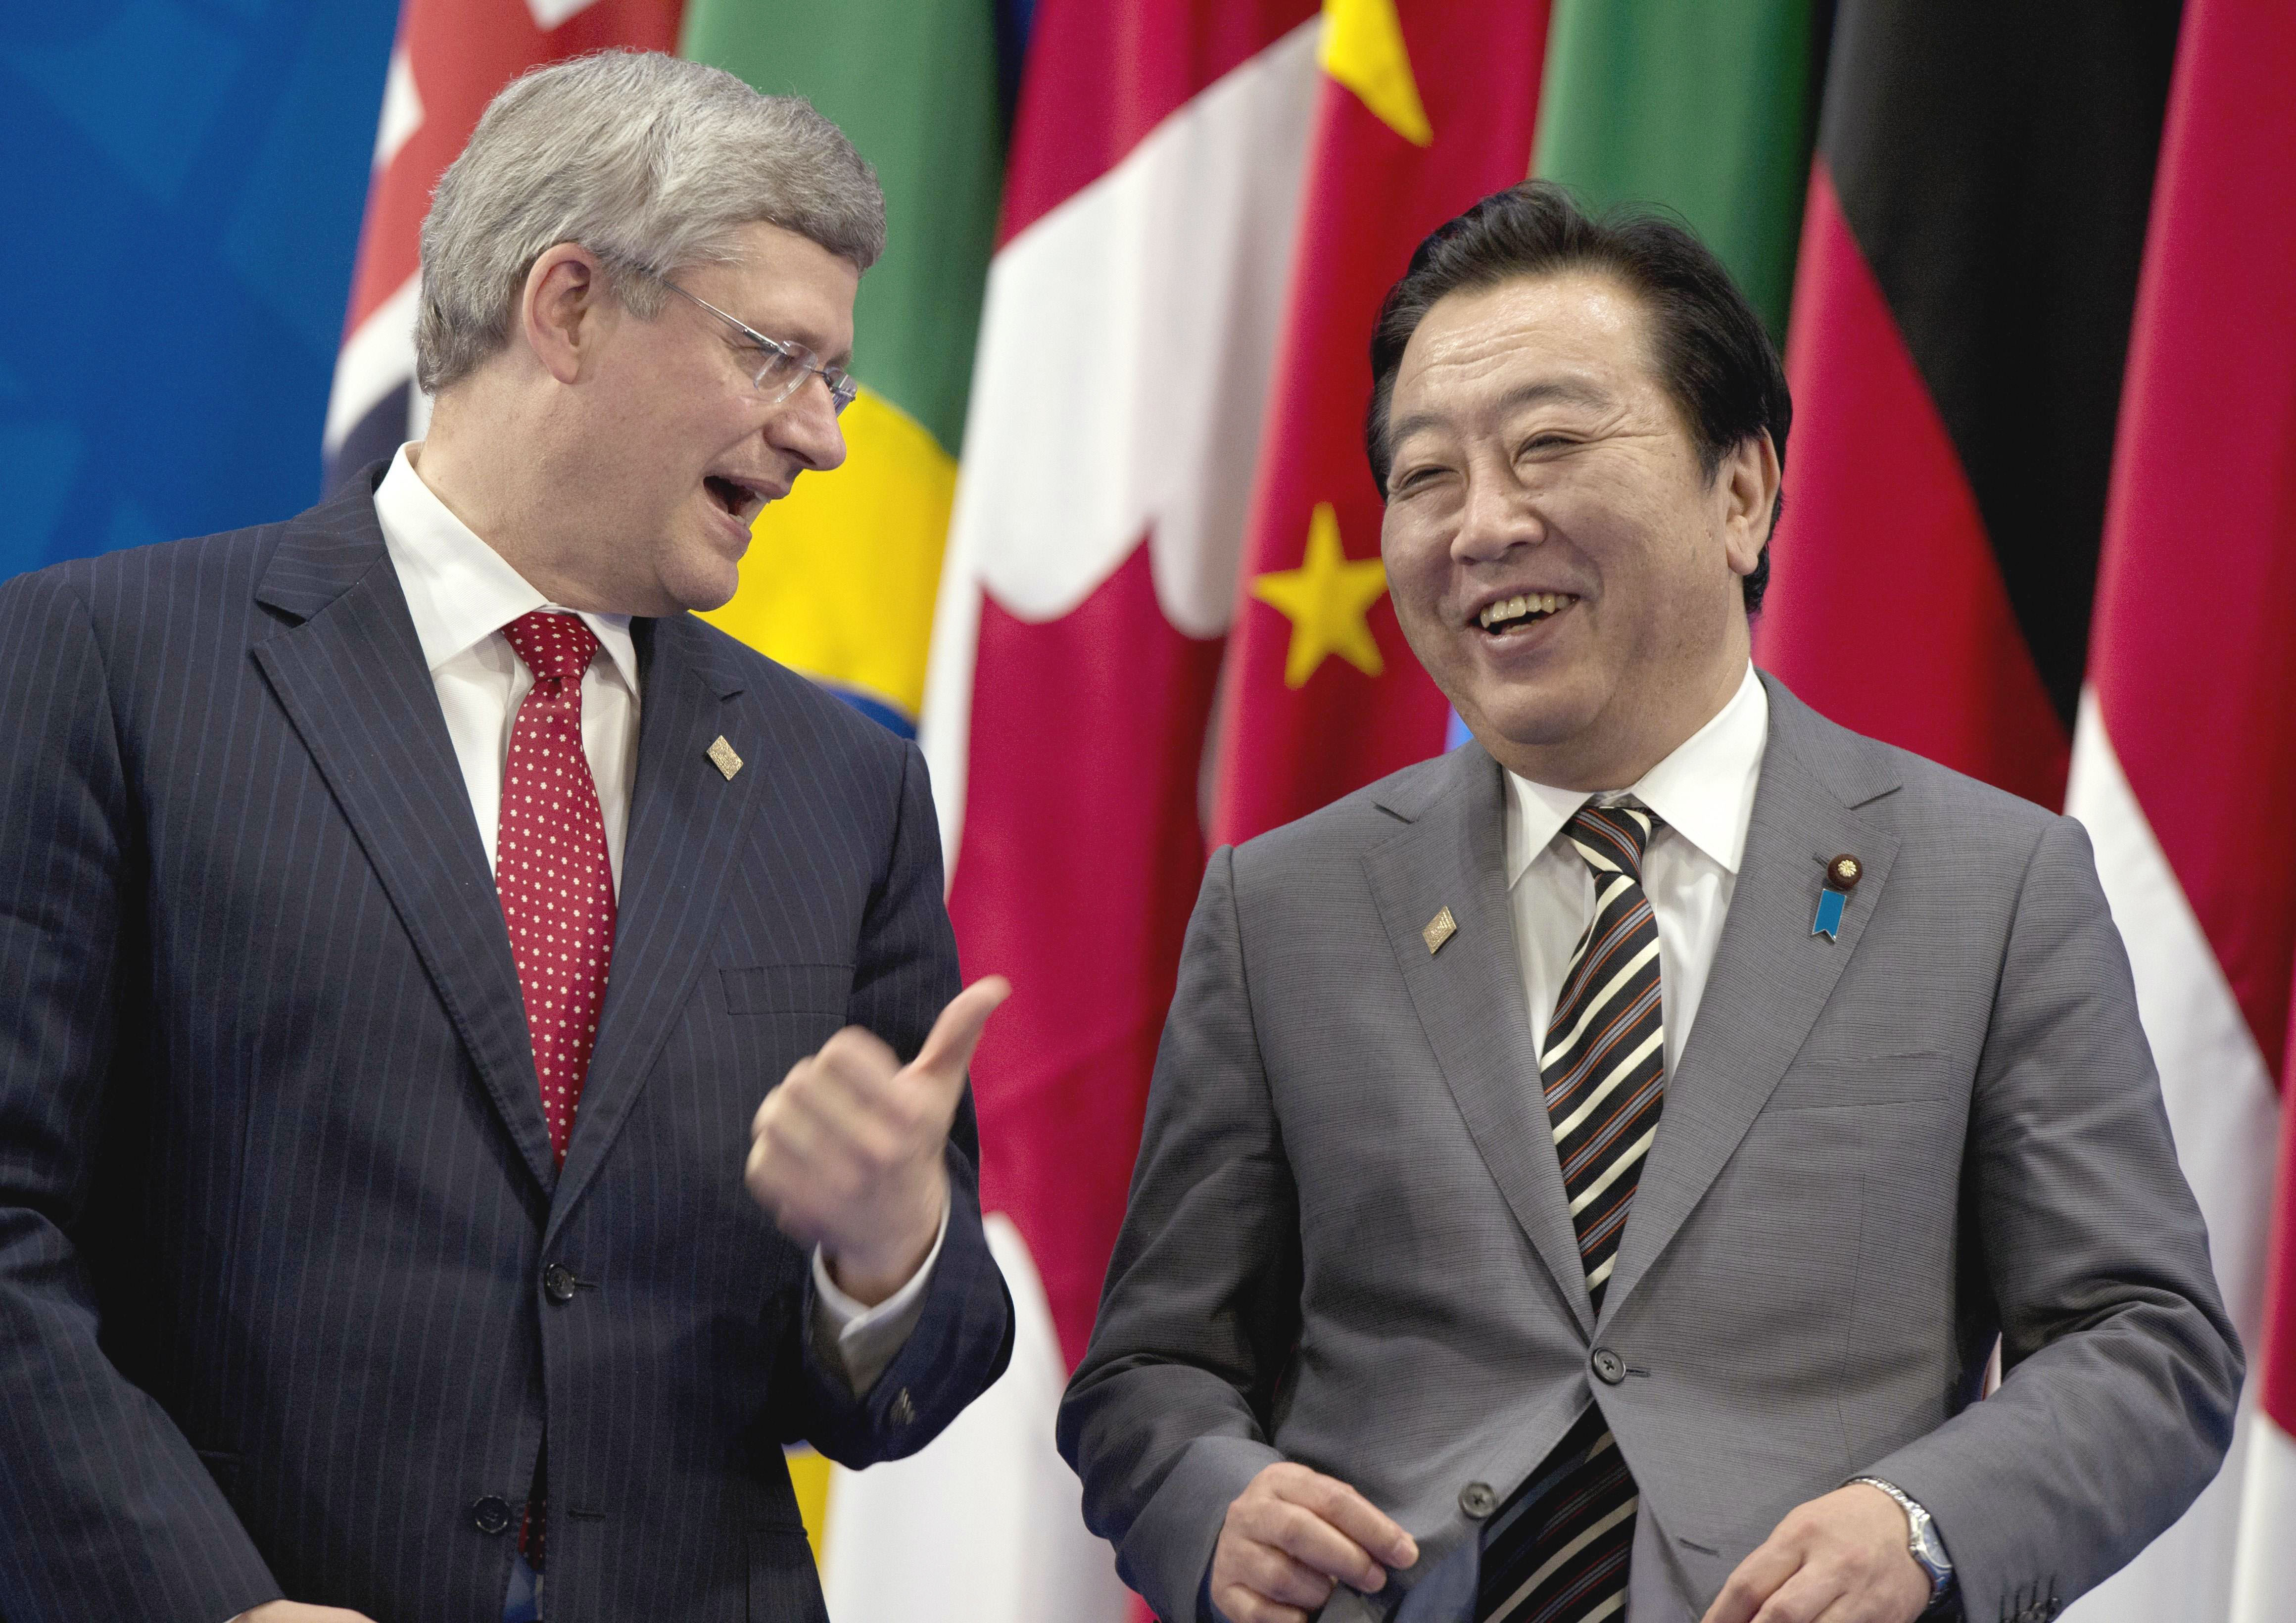 Amigos: Canadian Prime Minister Stephen Harper shares a laugh with Prime Minister Yoshihiko Noda during a Monday photo session at the G-20 summit in Los Cabos, Mexico. | AFP-JIJI